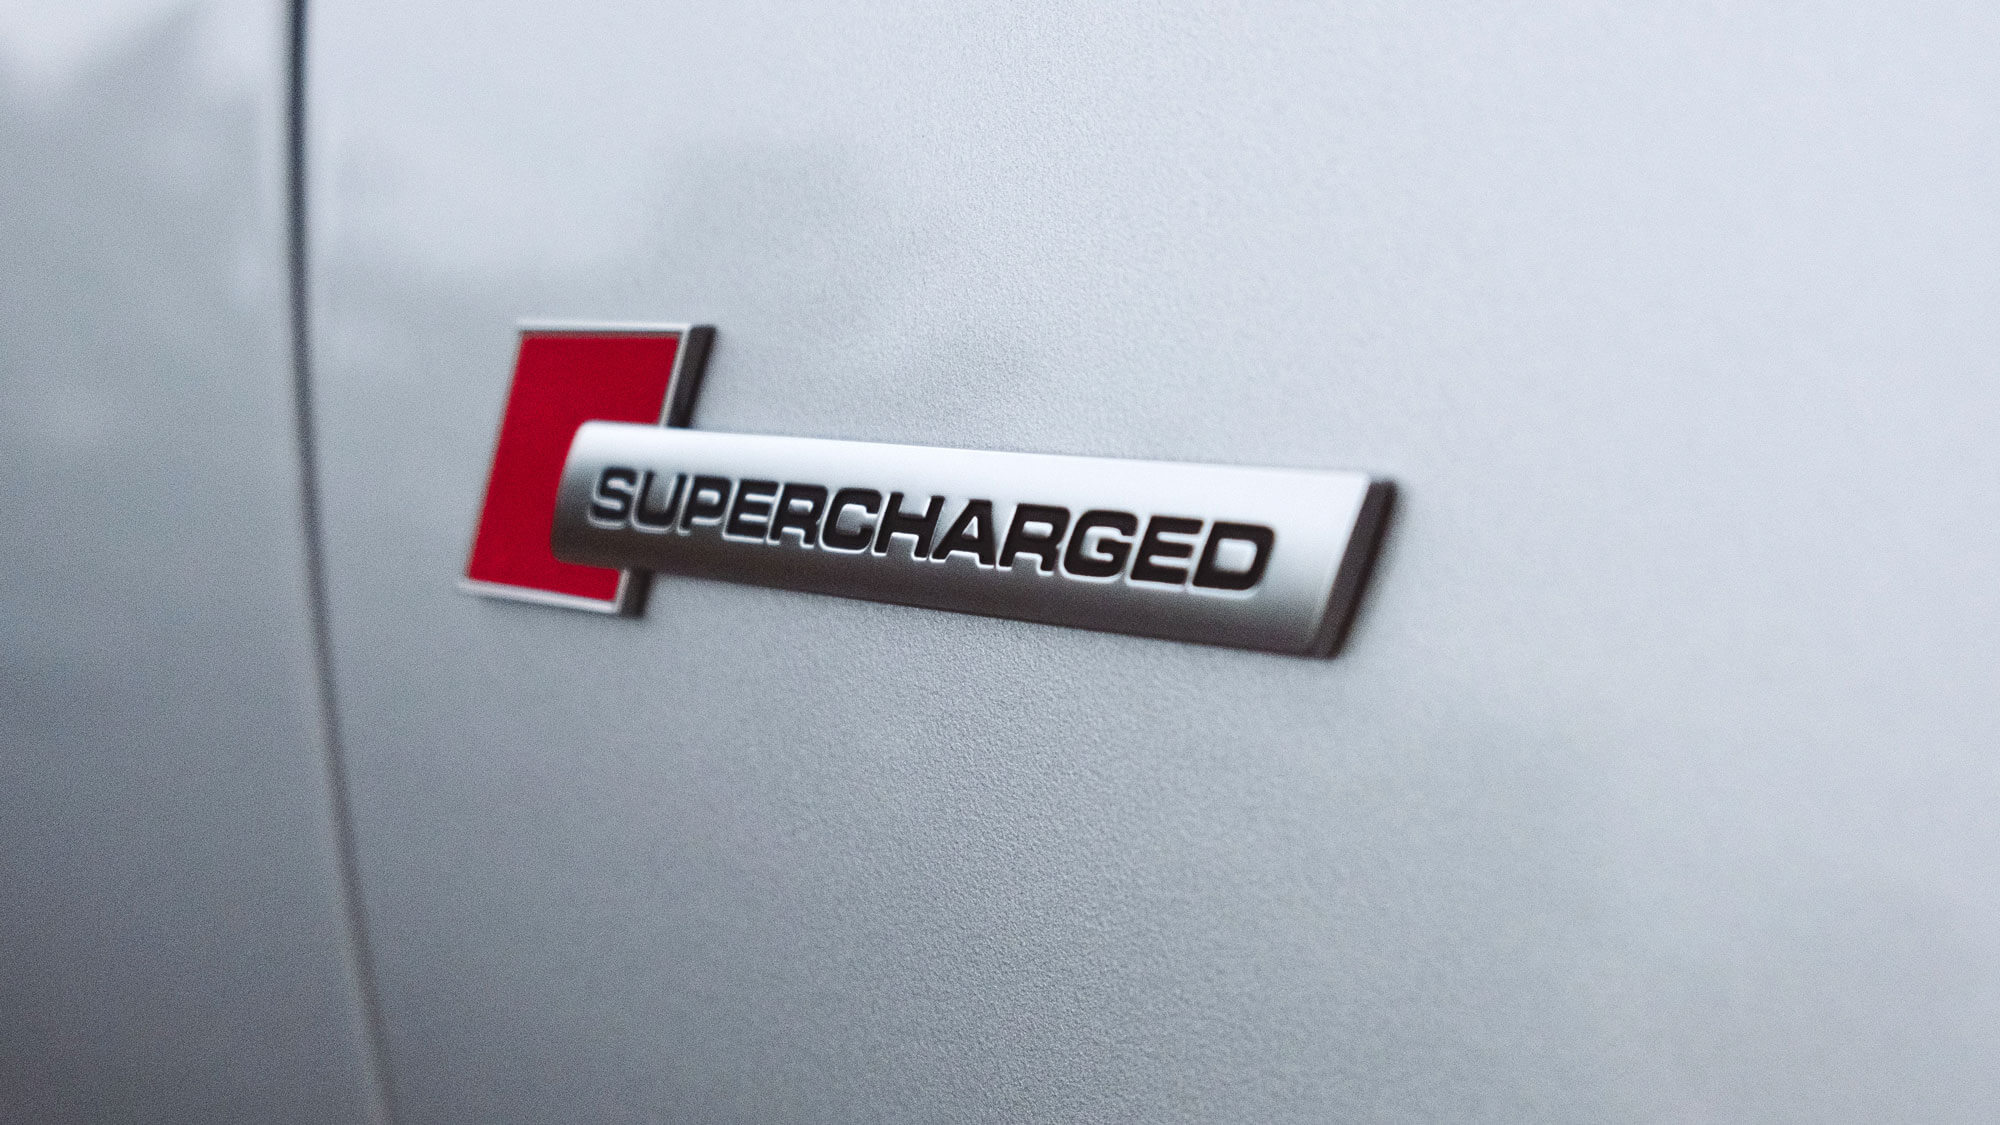 Supercharge innovation